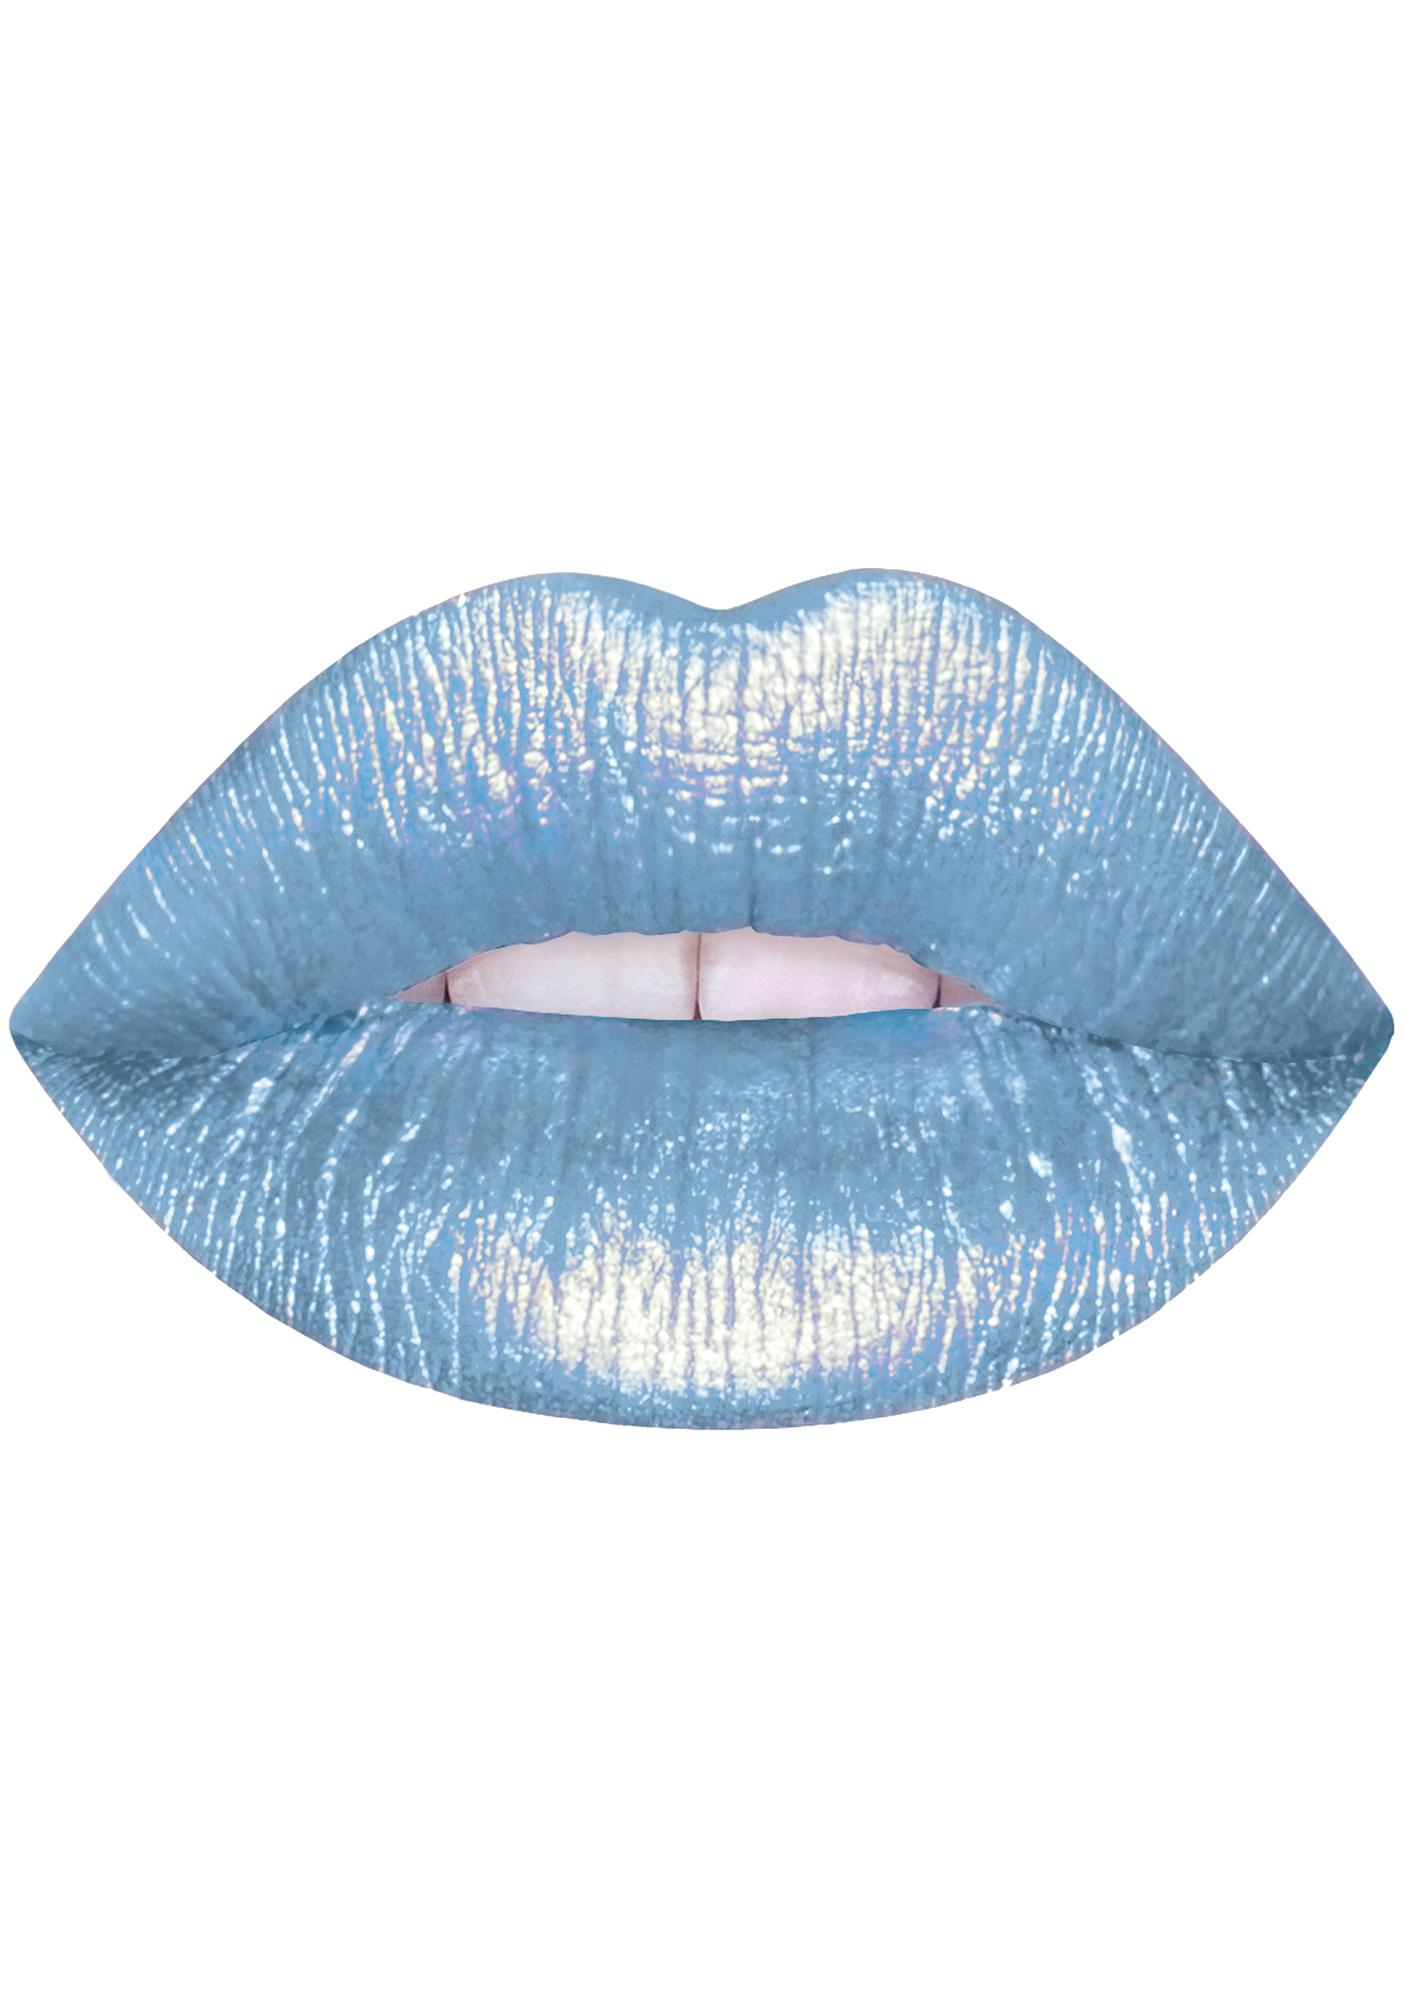 Lime Crime Mermaid's Grotto Metallic Velvetine Liquid Lipstick